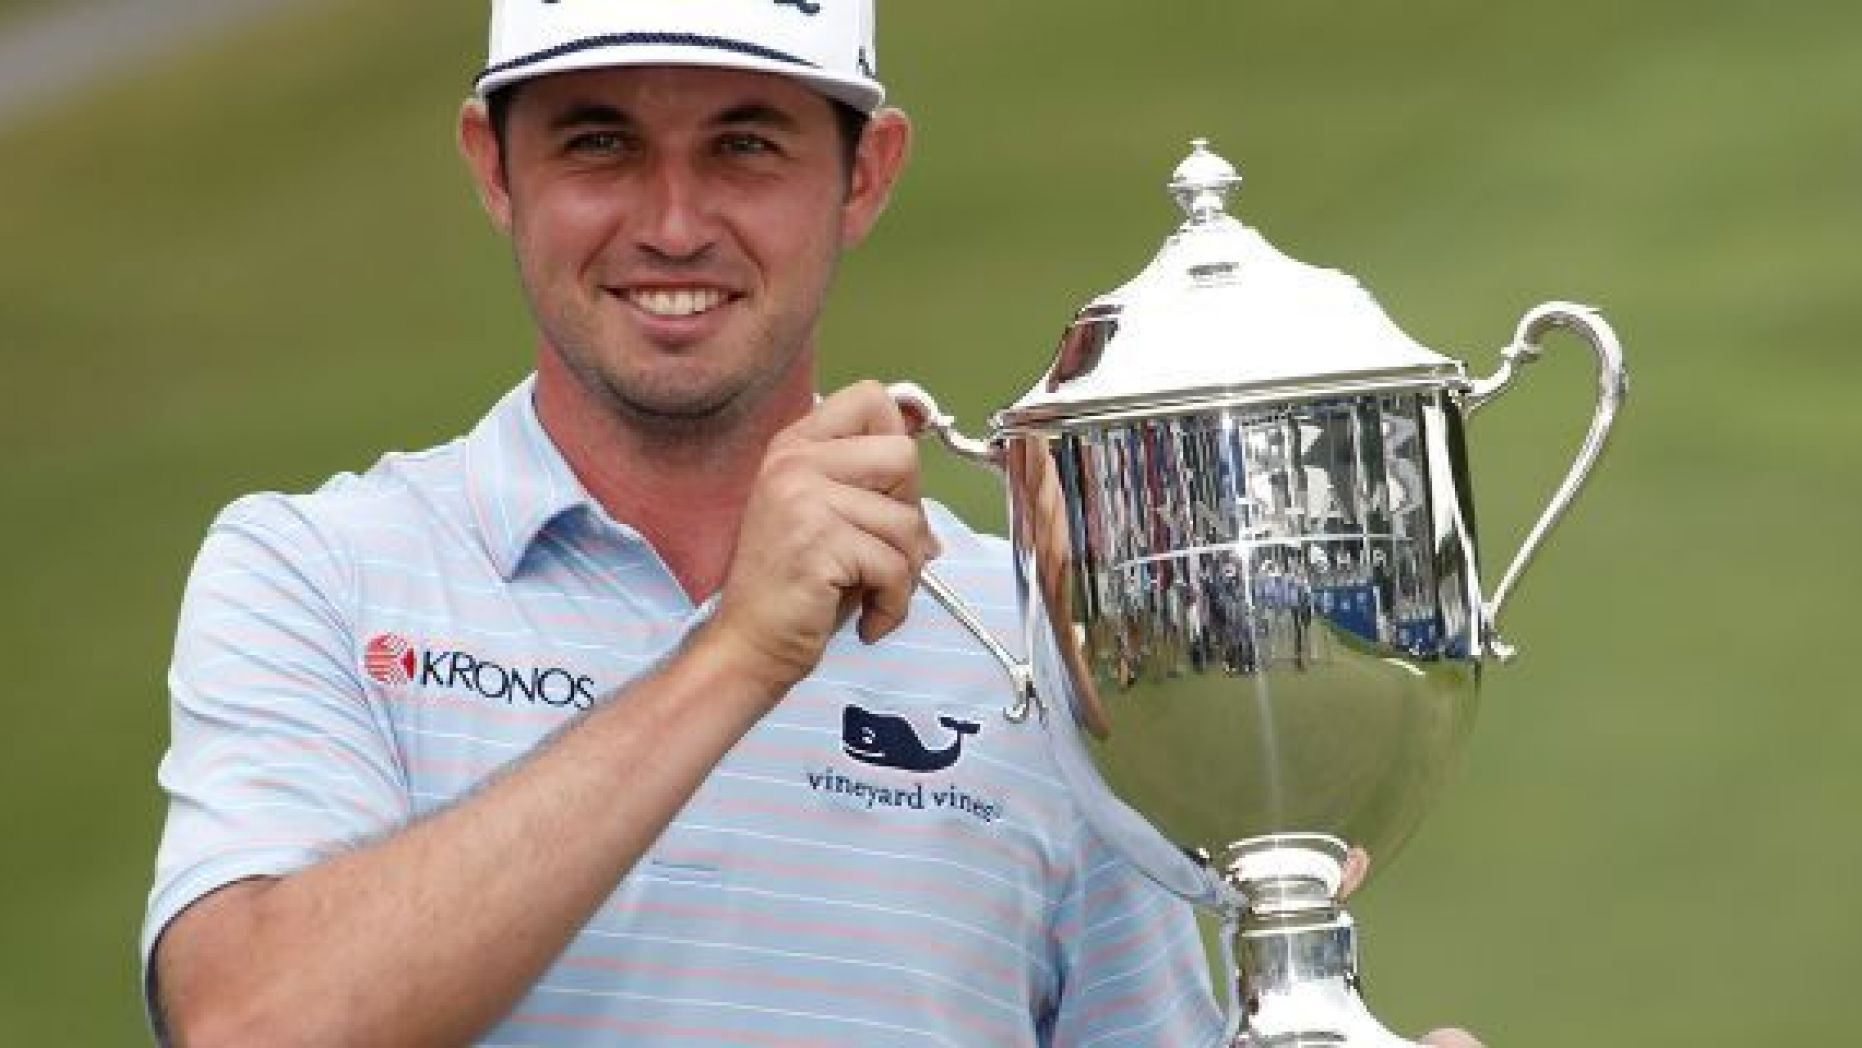 J. T. Poston holds the trophy after he won the Wyndham Championship golf tournament at Sedgefield Country Club in Greensboro, N.C., Sunday, Aug. 4, 2019. (AP Photo/Chris Seward)